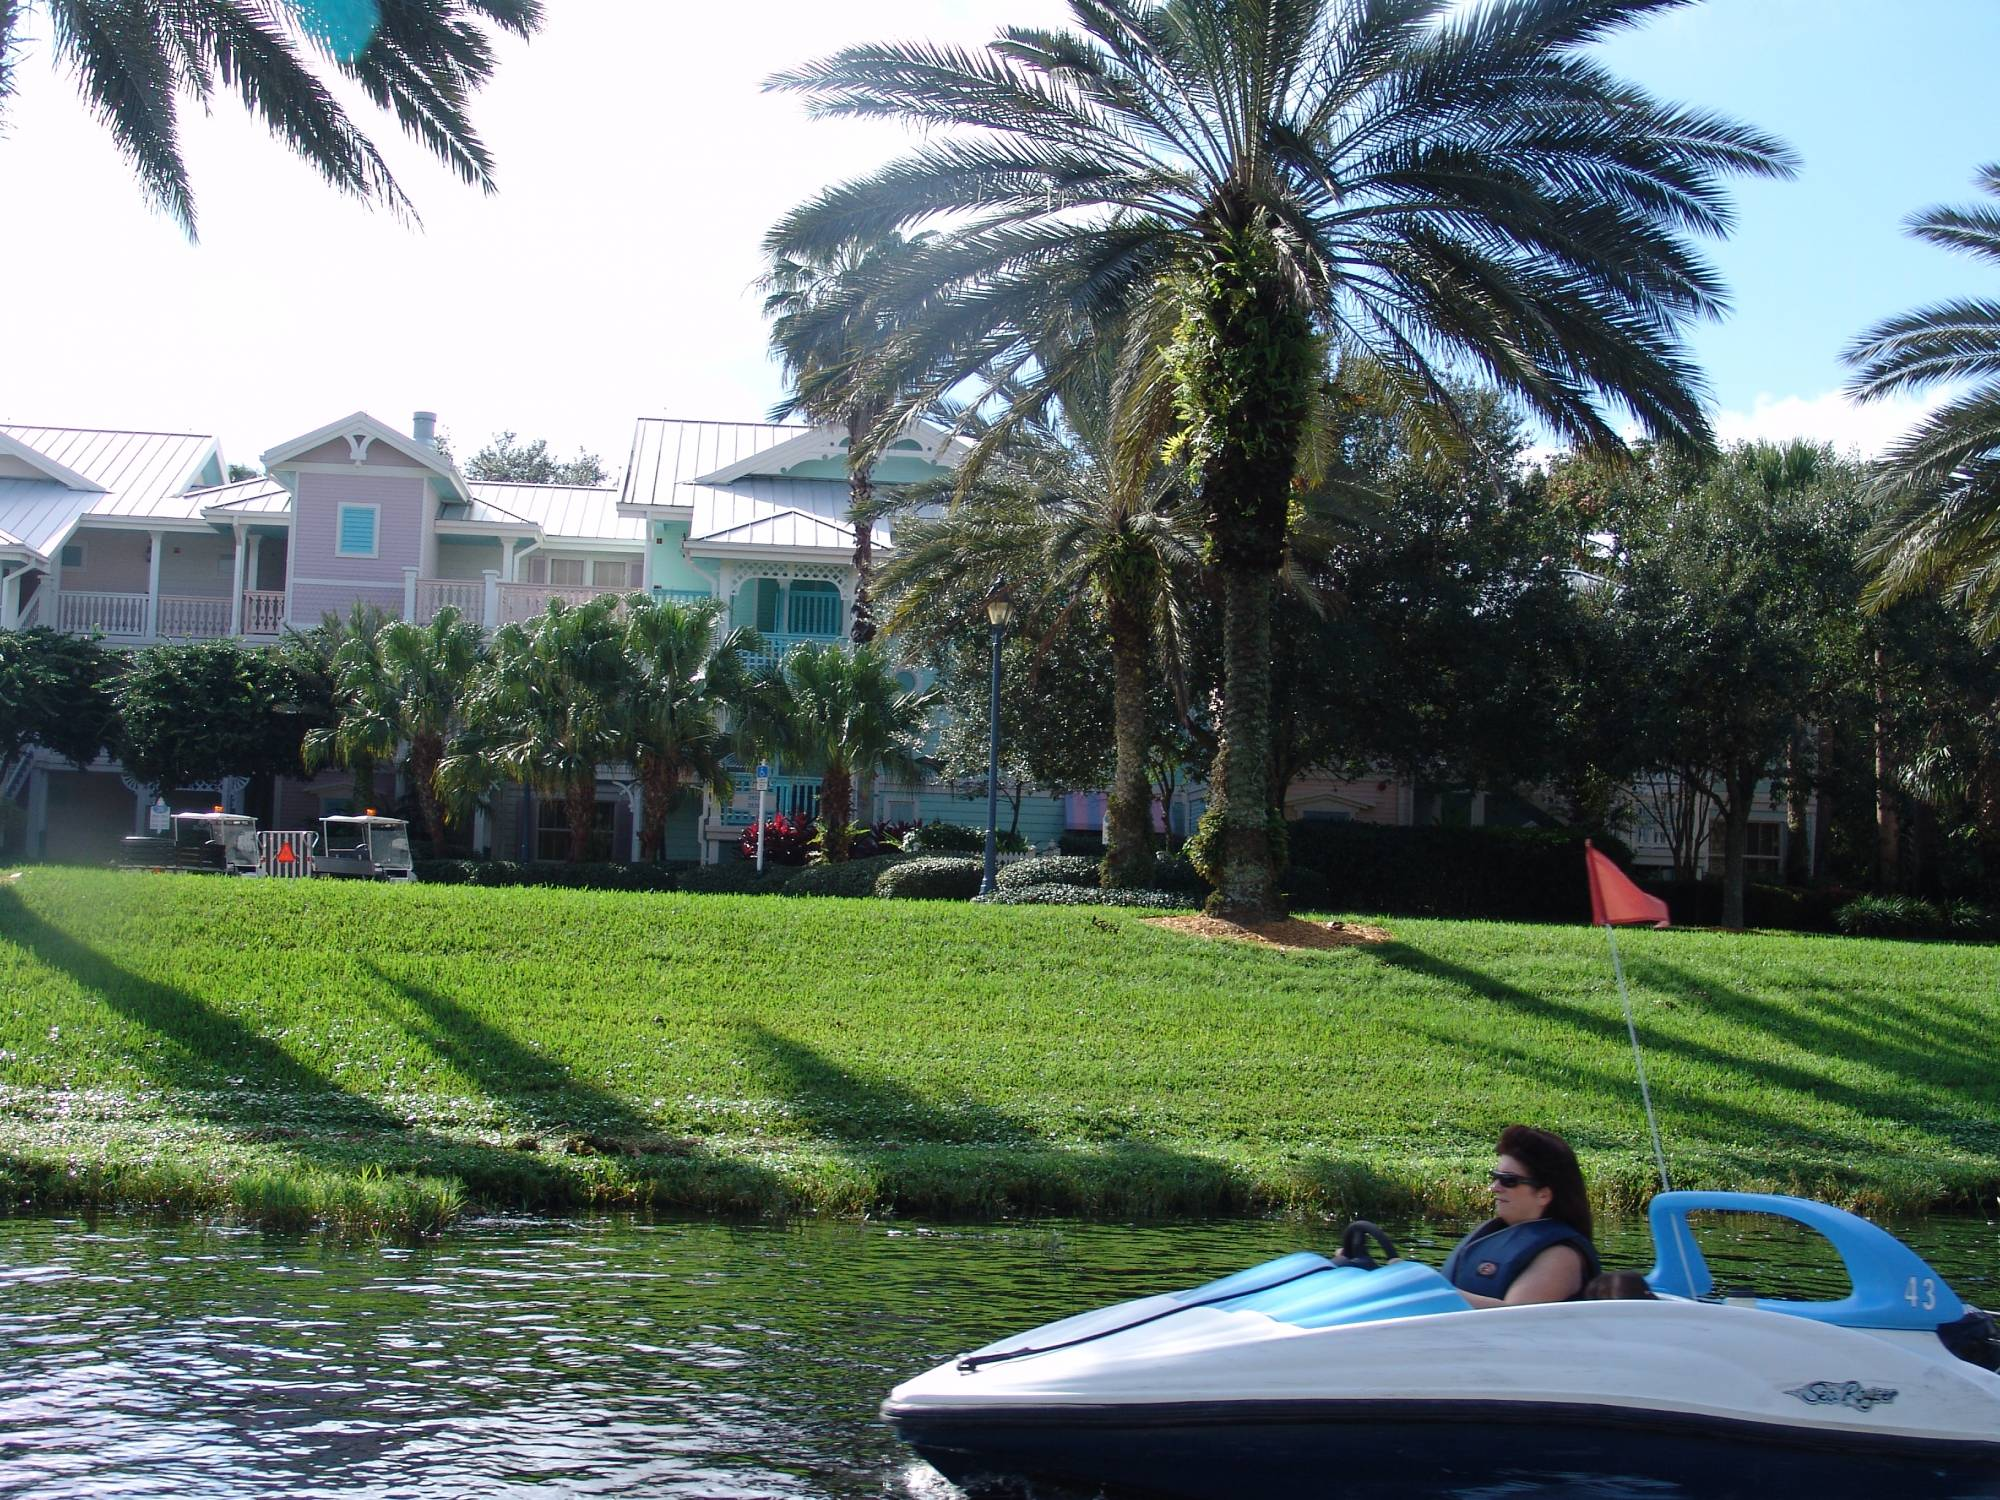 Explore the waterways of Walt Disney World by Boat! | PassPorter.com